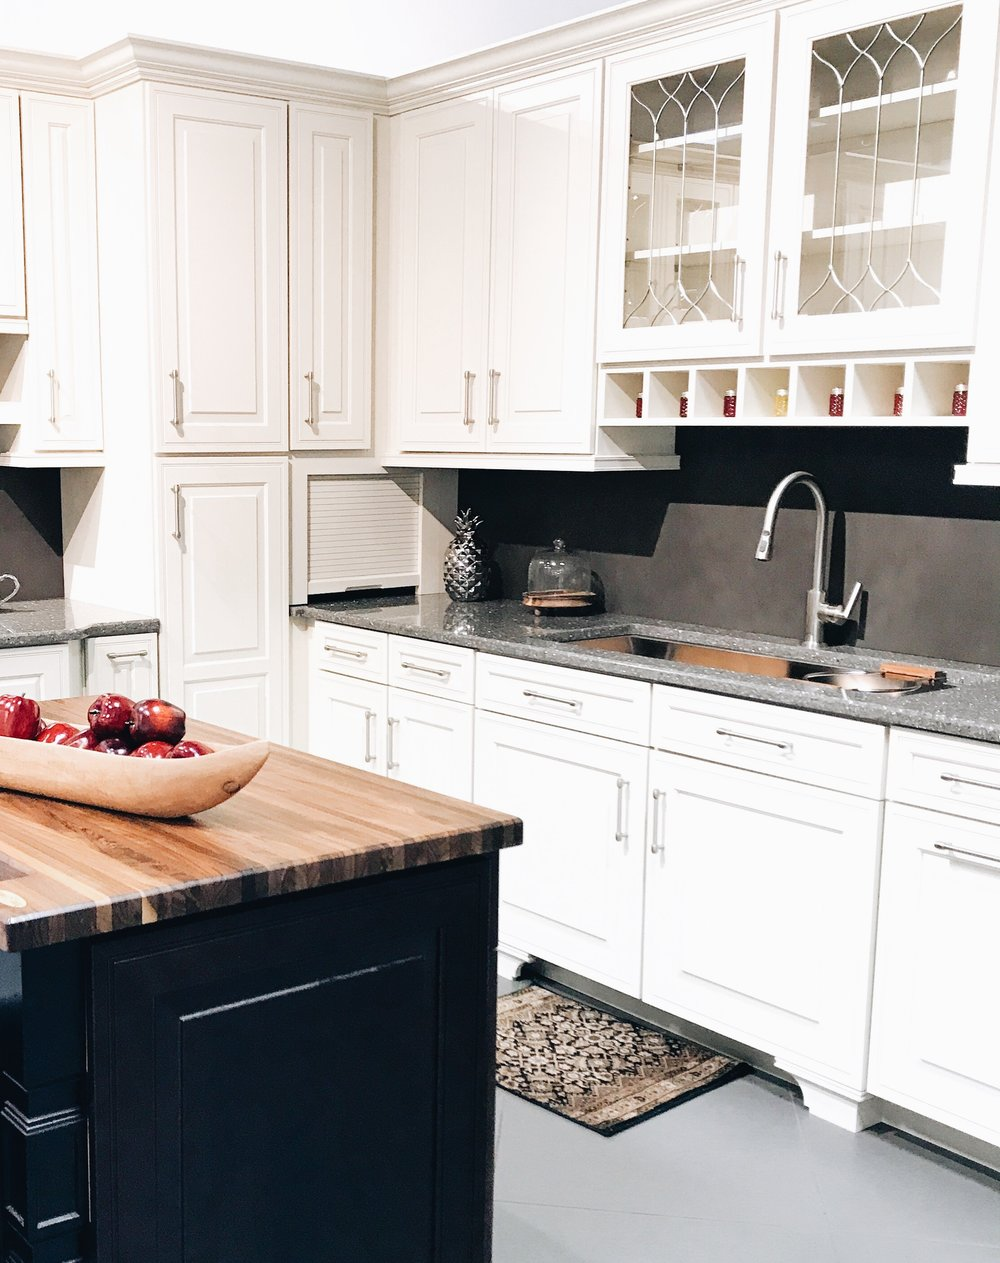 How To Choose and Select Kitchen Cabinets For Your Home - First Thyme Mom. Dark Island With White Cabinets